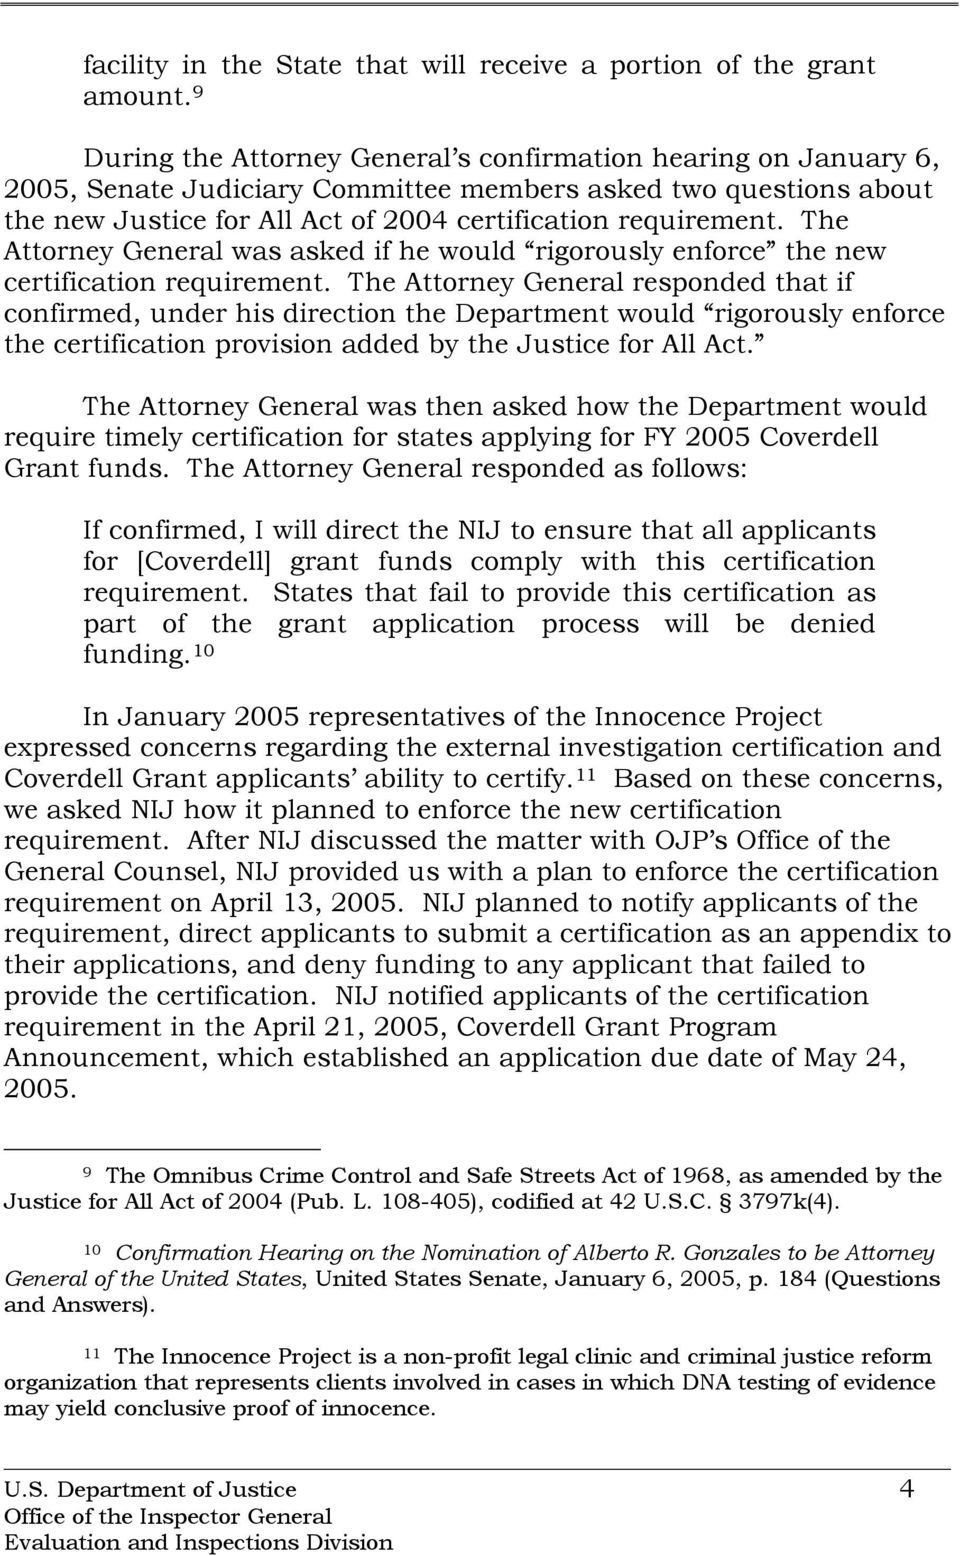 The Attorney General was asked if he would rigorously enforce the new certification requirement.